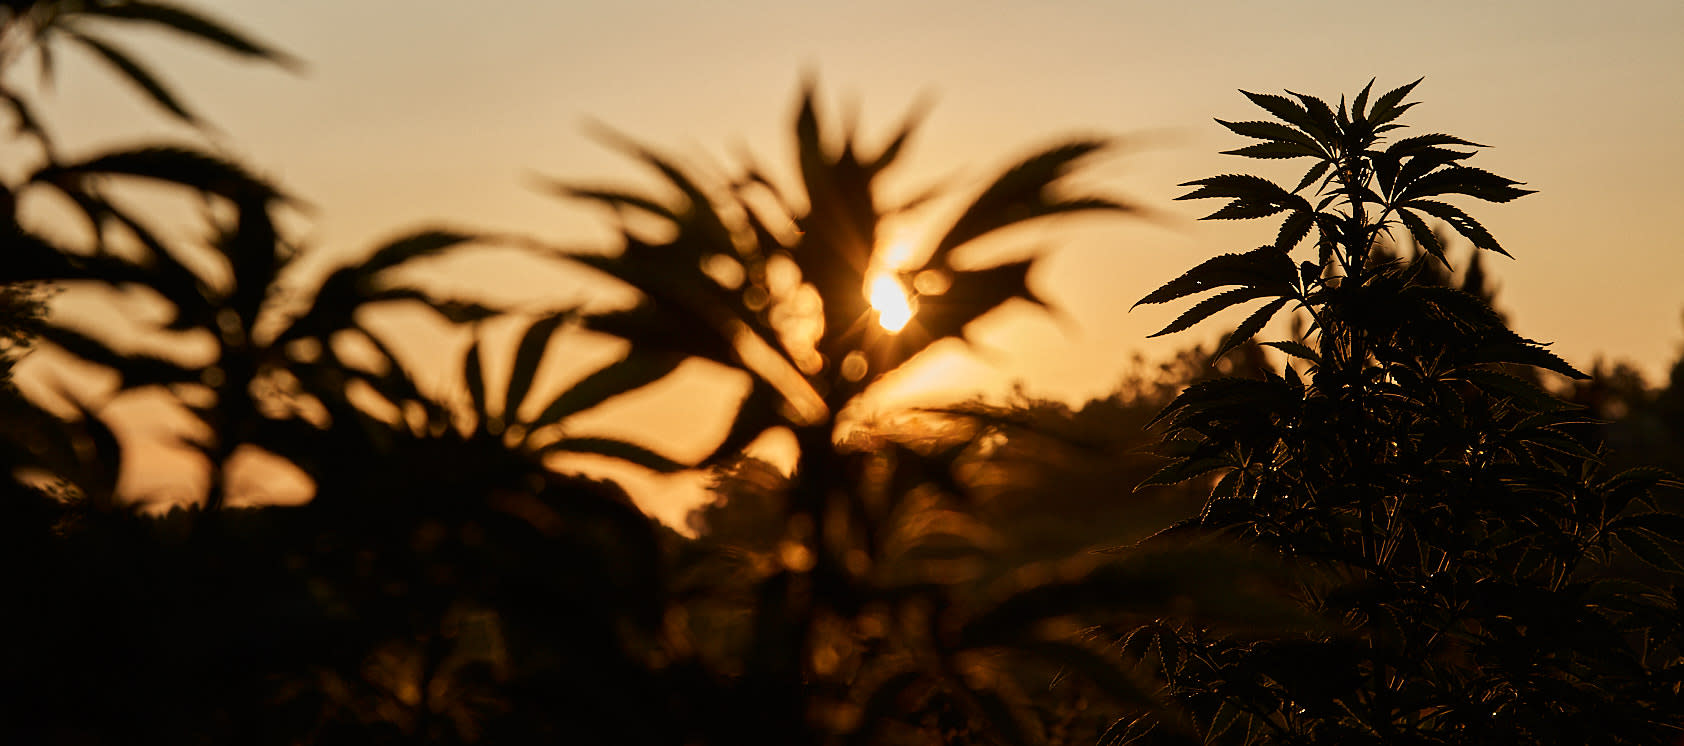 Sunrise at Frangiosa Farms & Colorado Hemp Honey